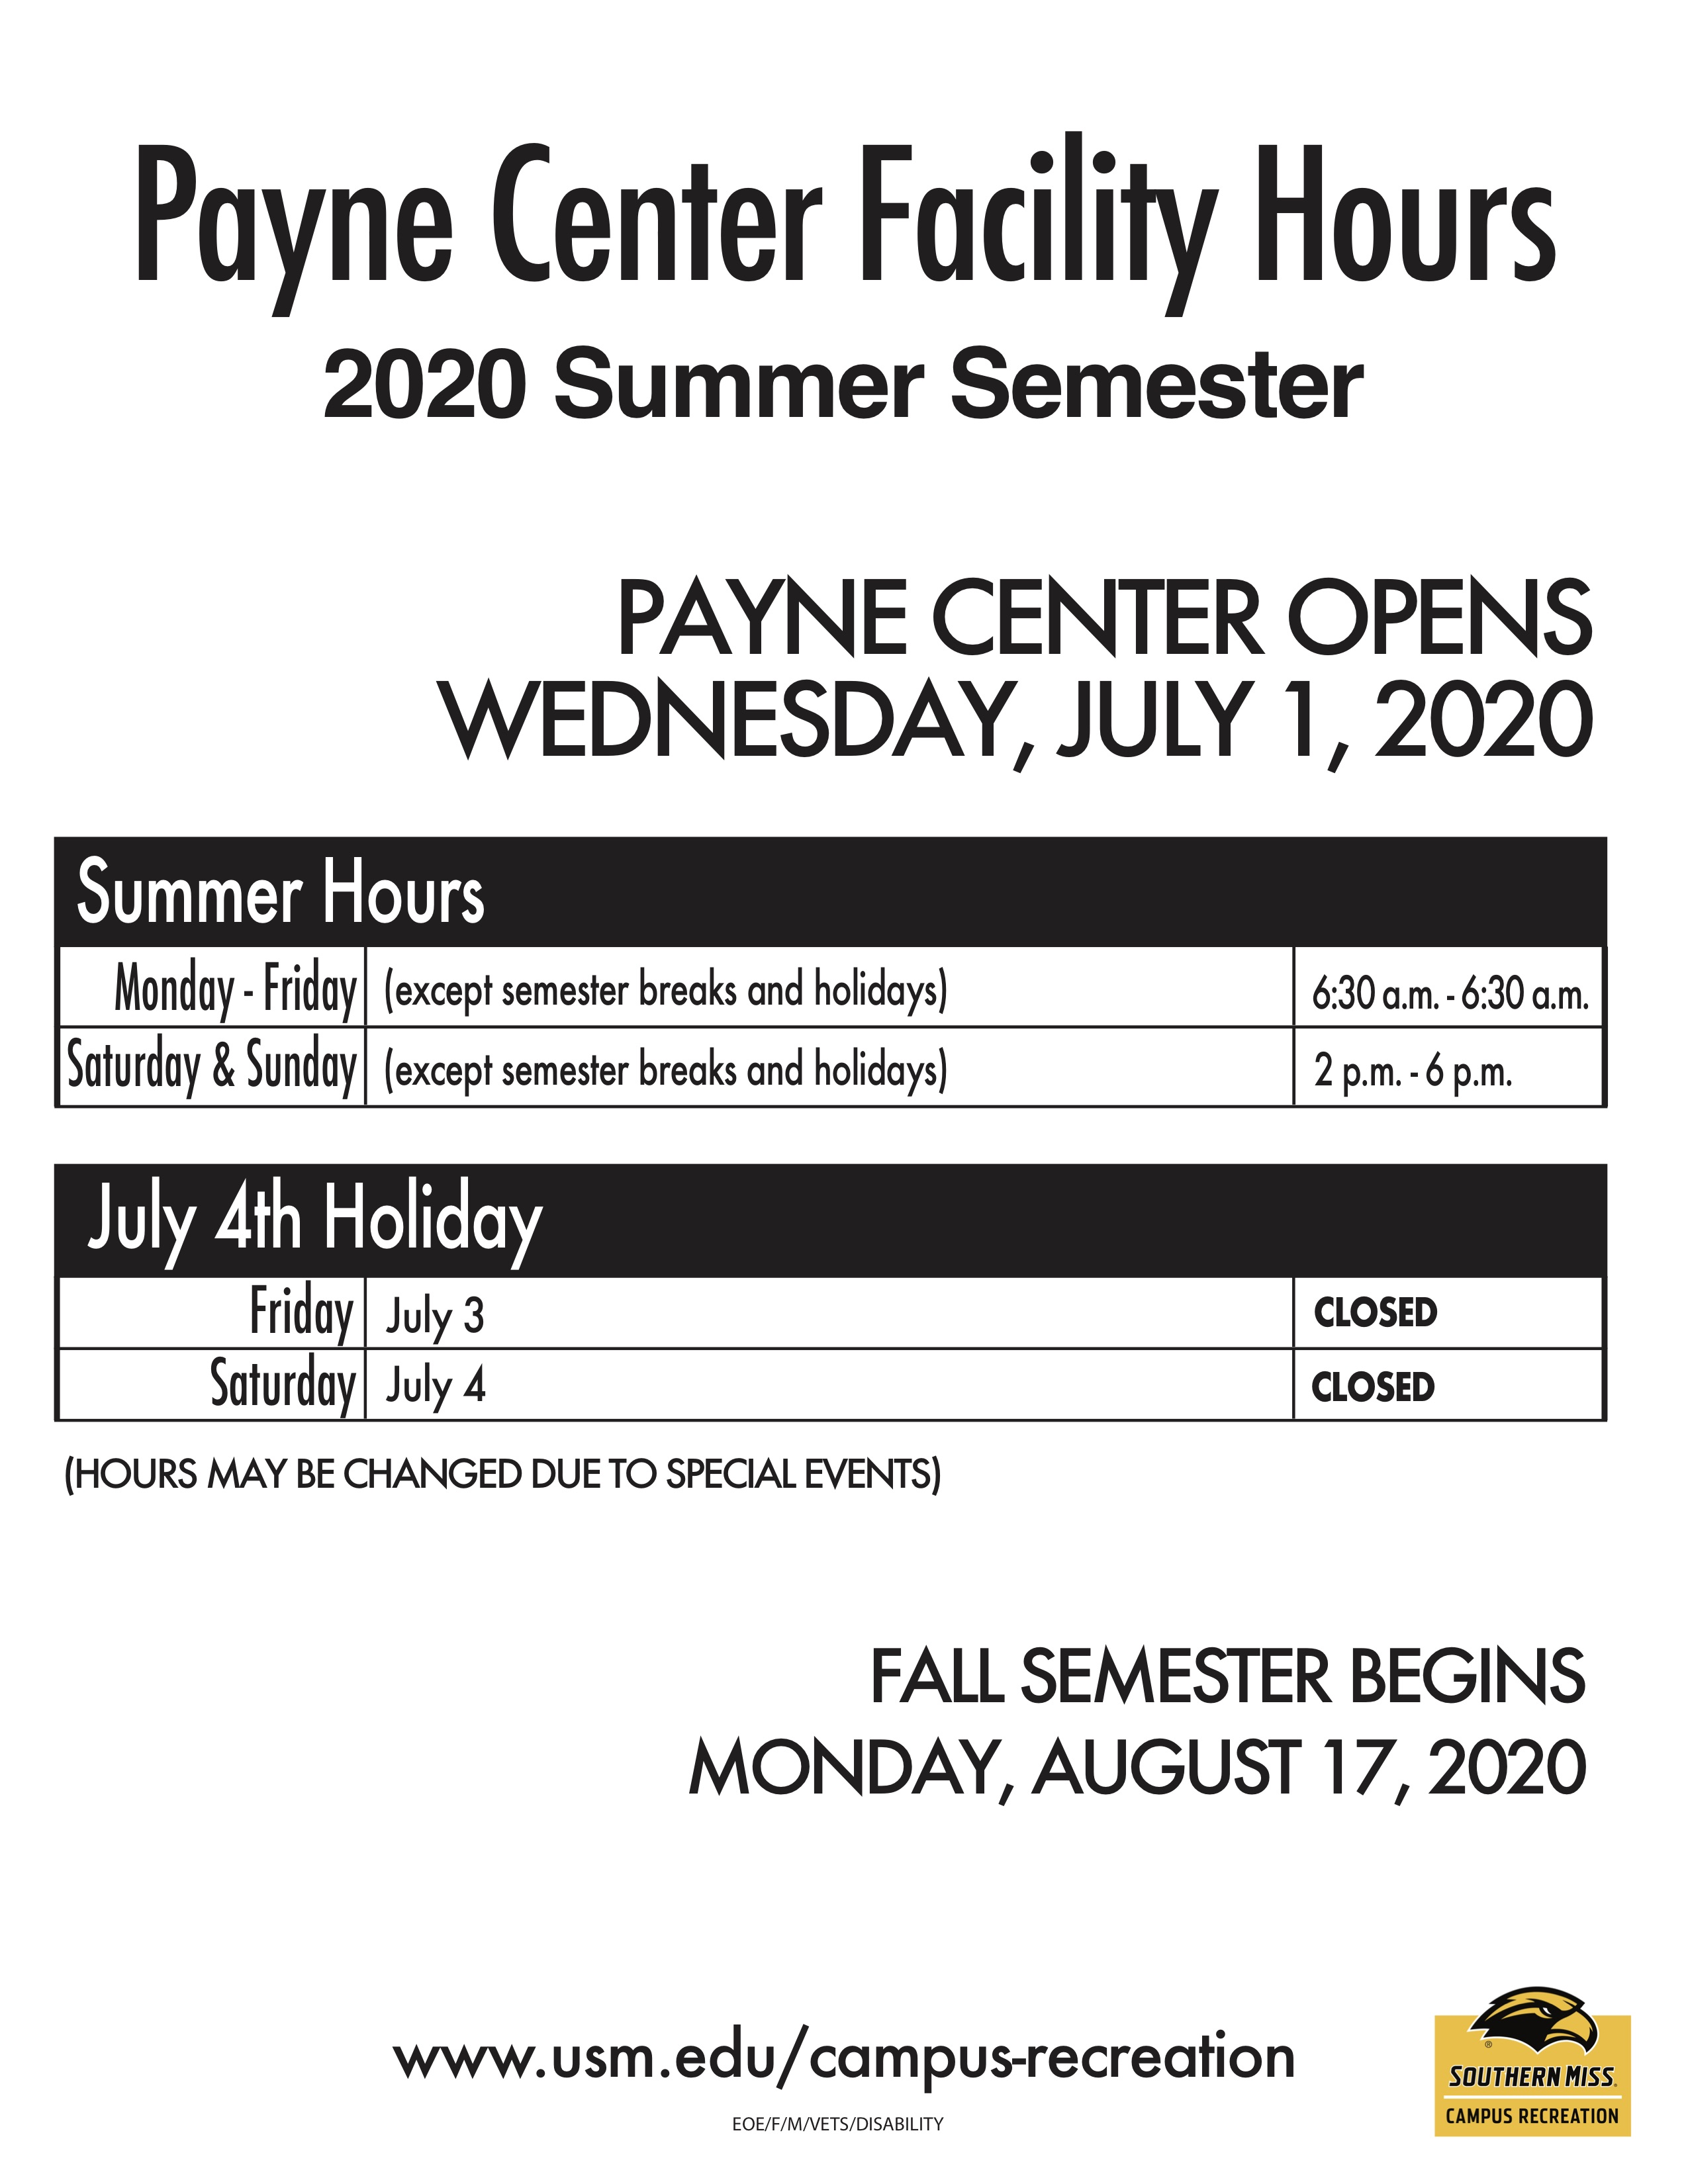 Payne Center Summer 2020 Building Hours